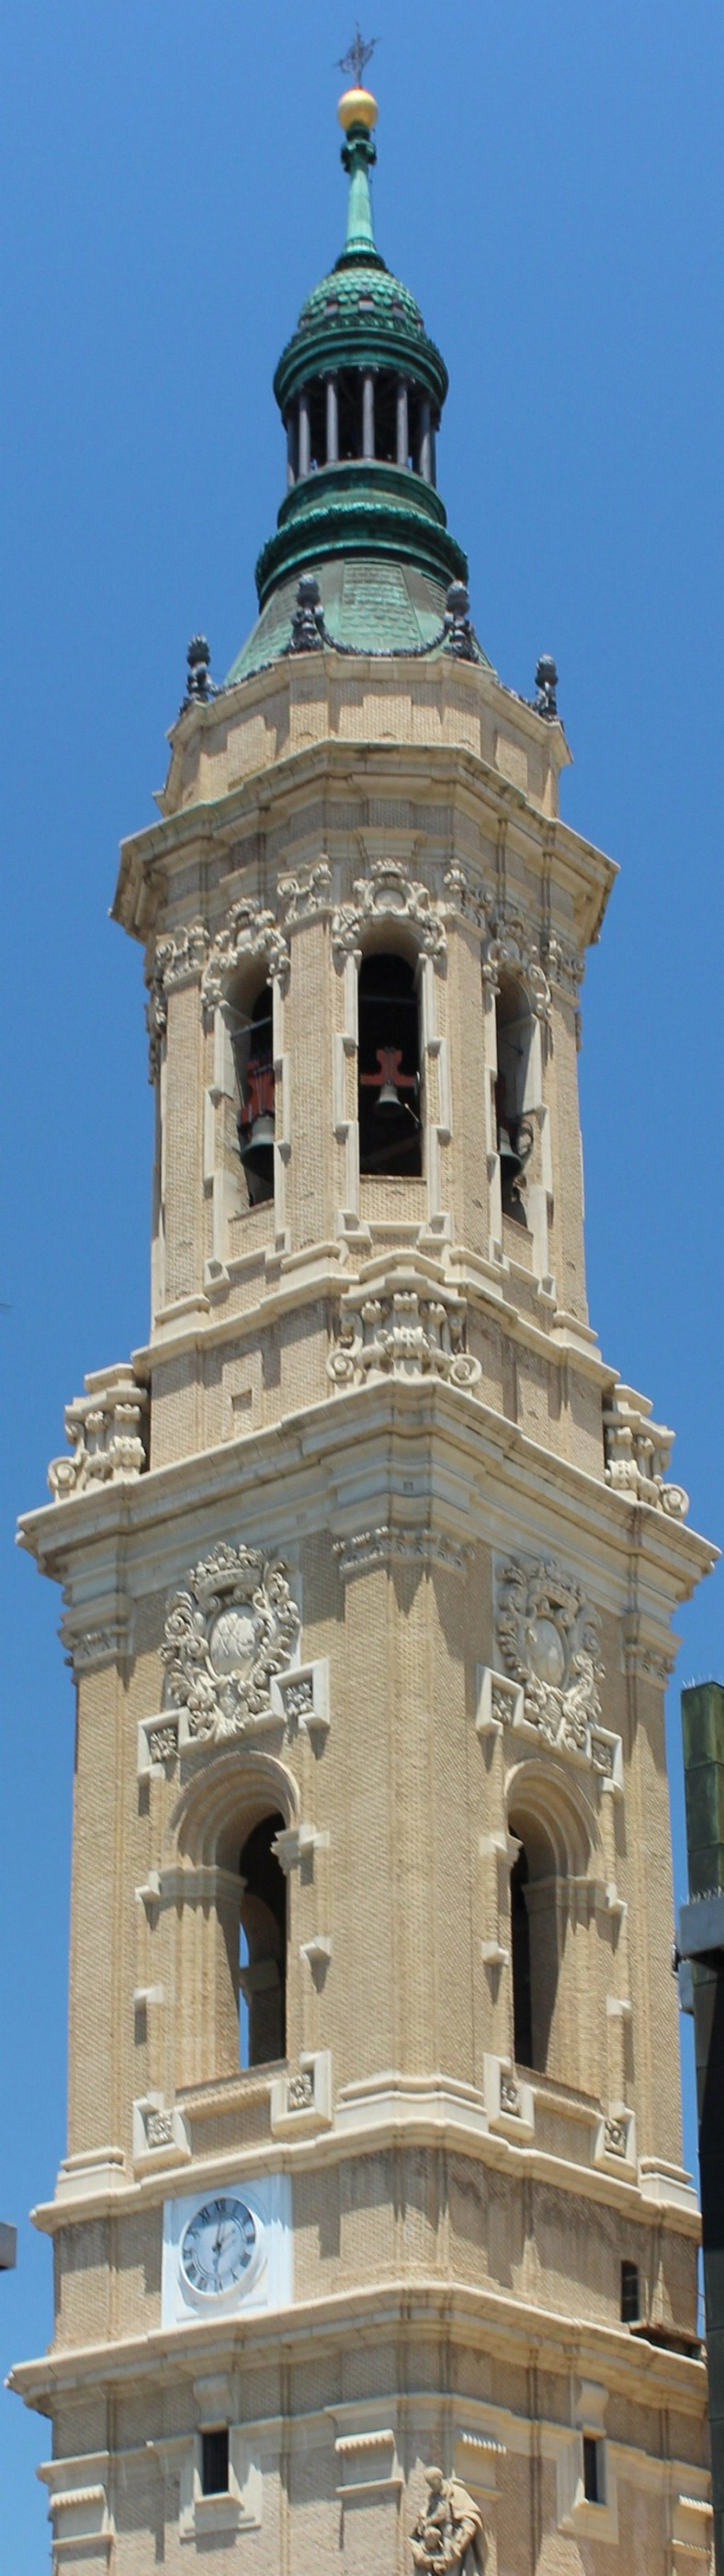 THE BELL TOWER OF THE BASILICA DEL PILAR